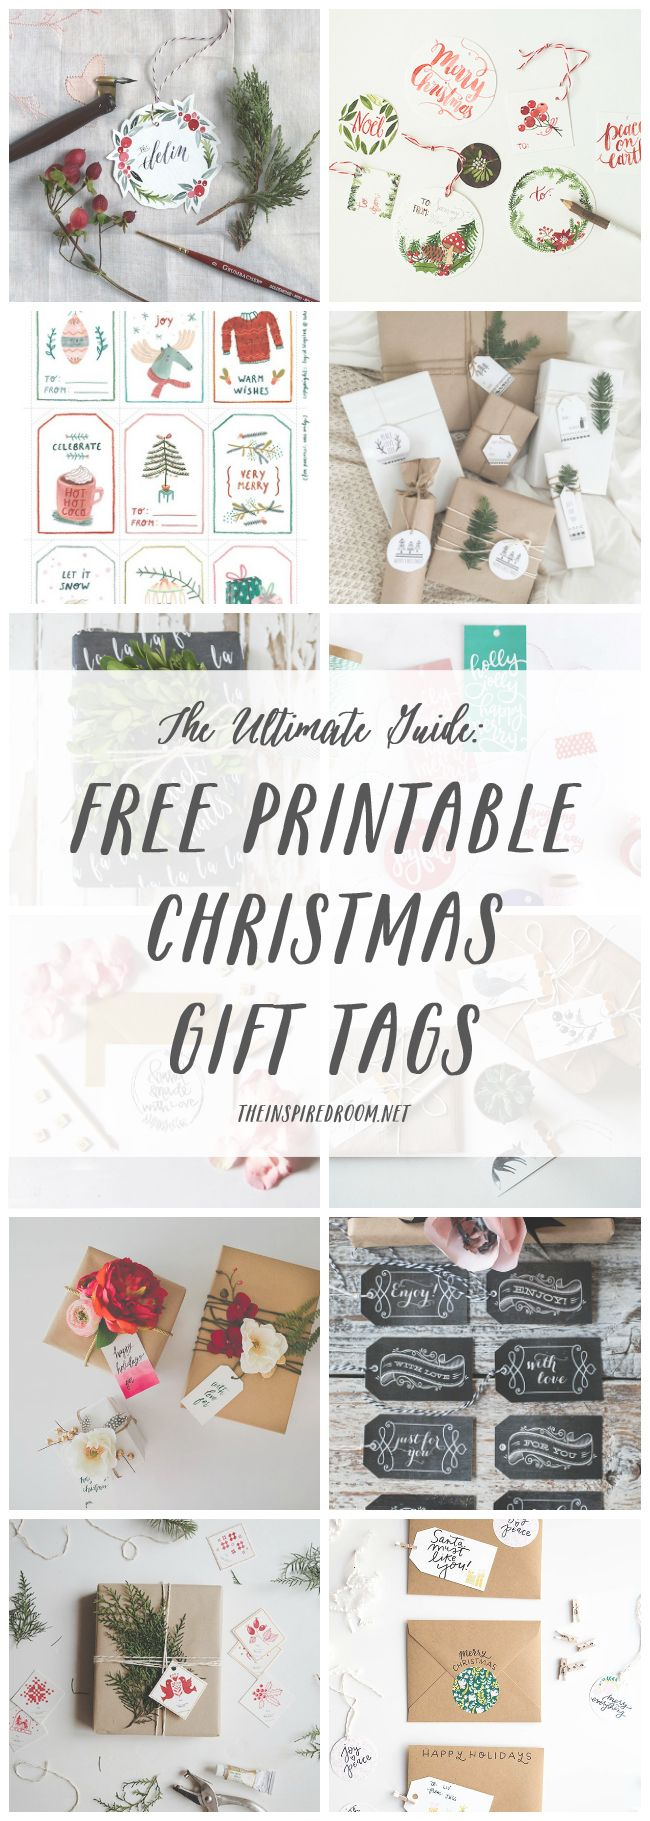 128 best free printables images on pinterest free printables the ultimate guide free printable christmas gift tags solutioingenieria Choice Image